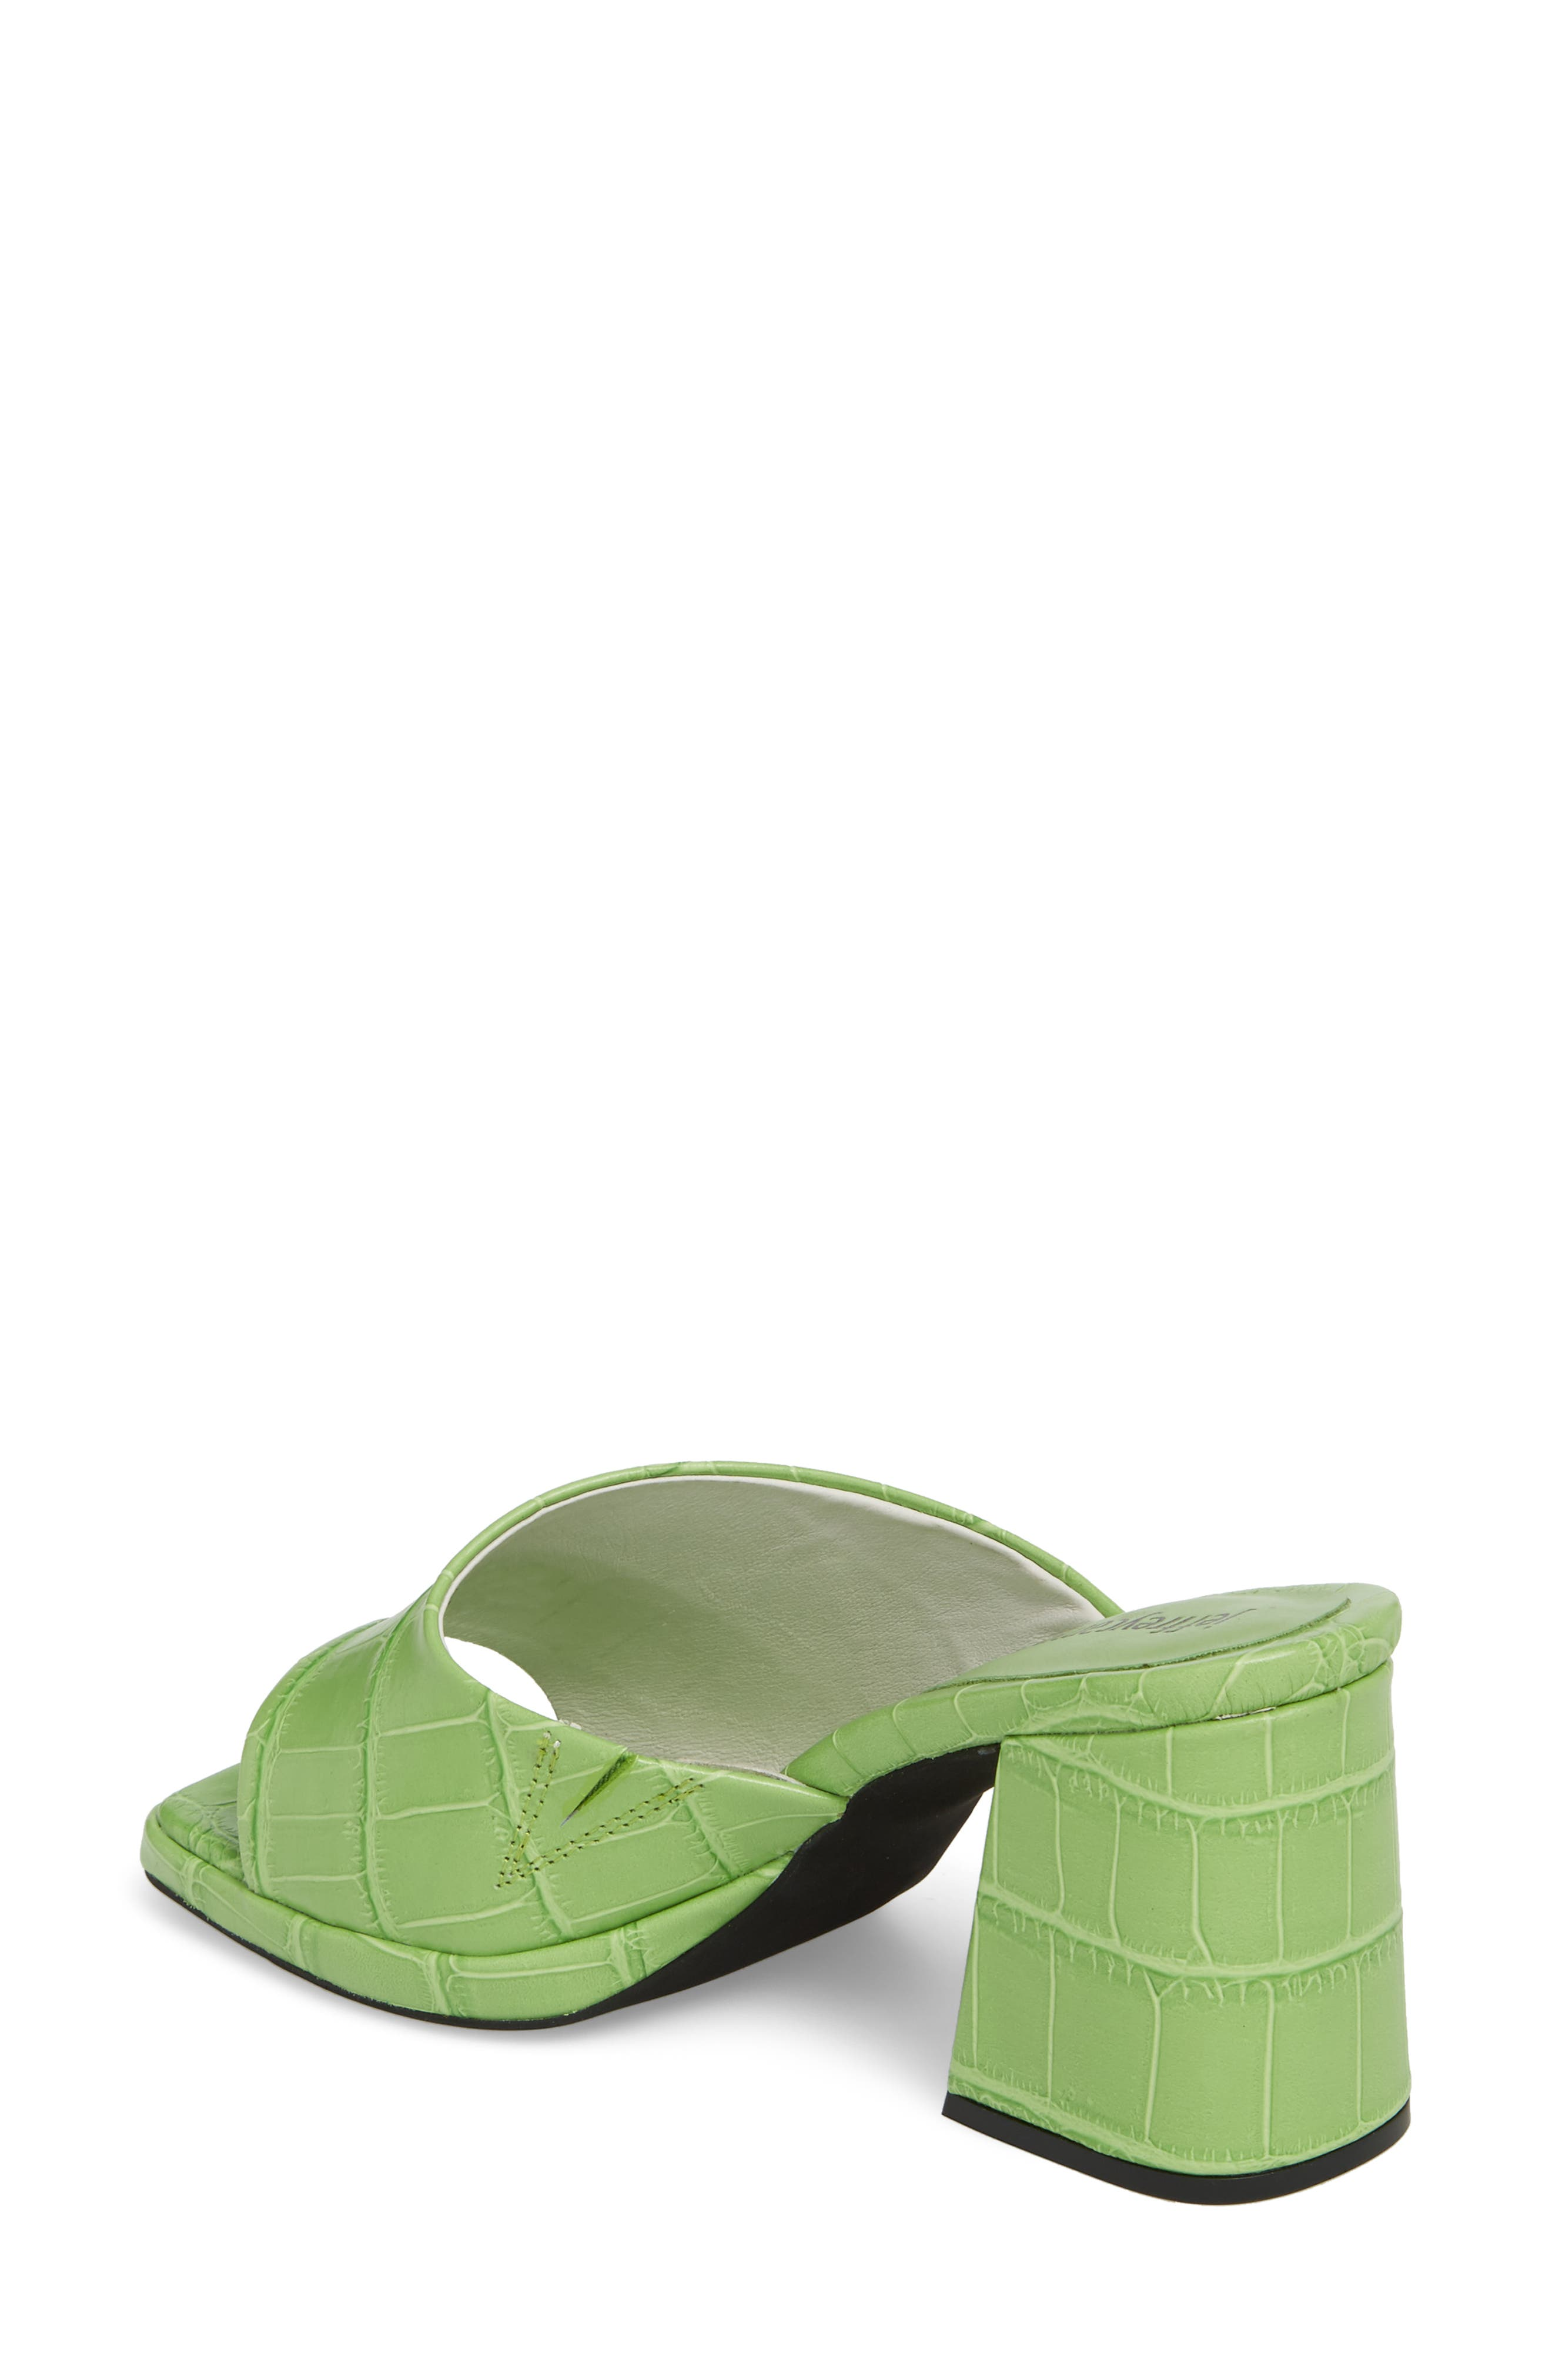 Suzuci Sandal,                             Alternate thumbnail 2, color,                             Green Leather